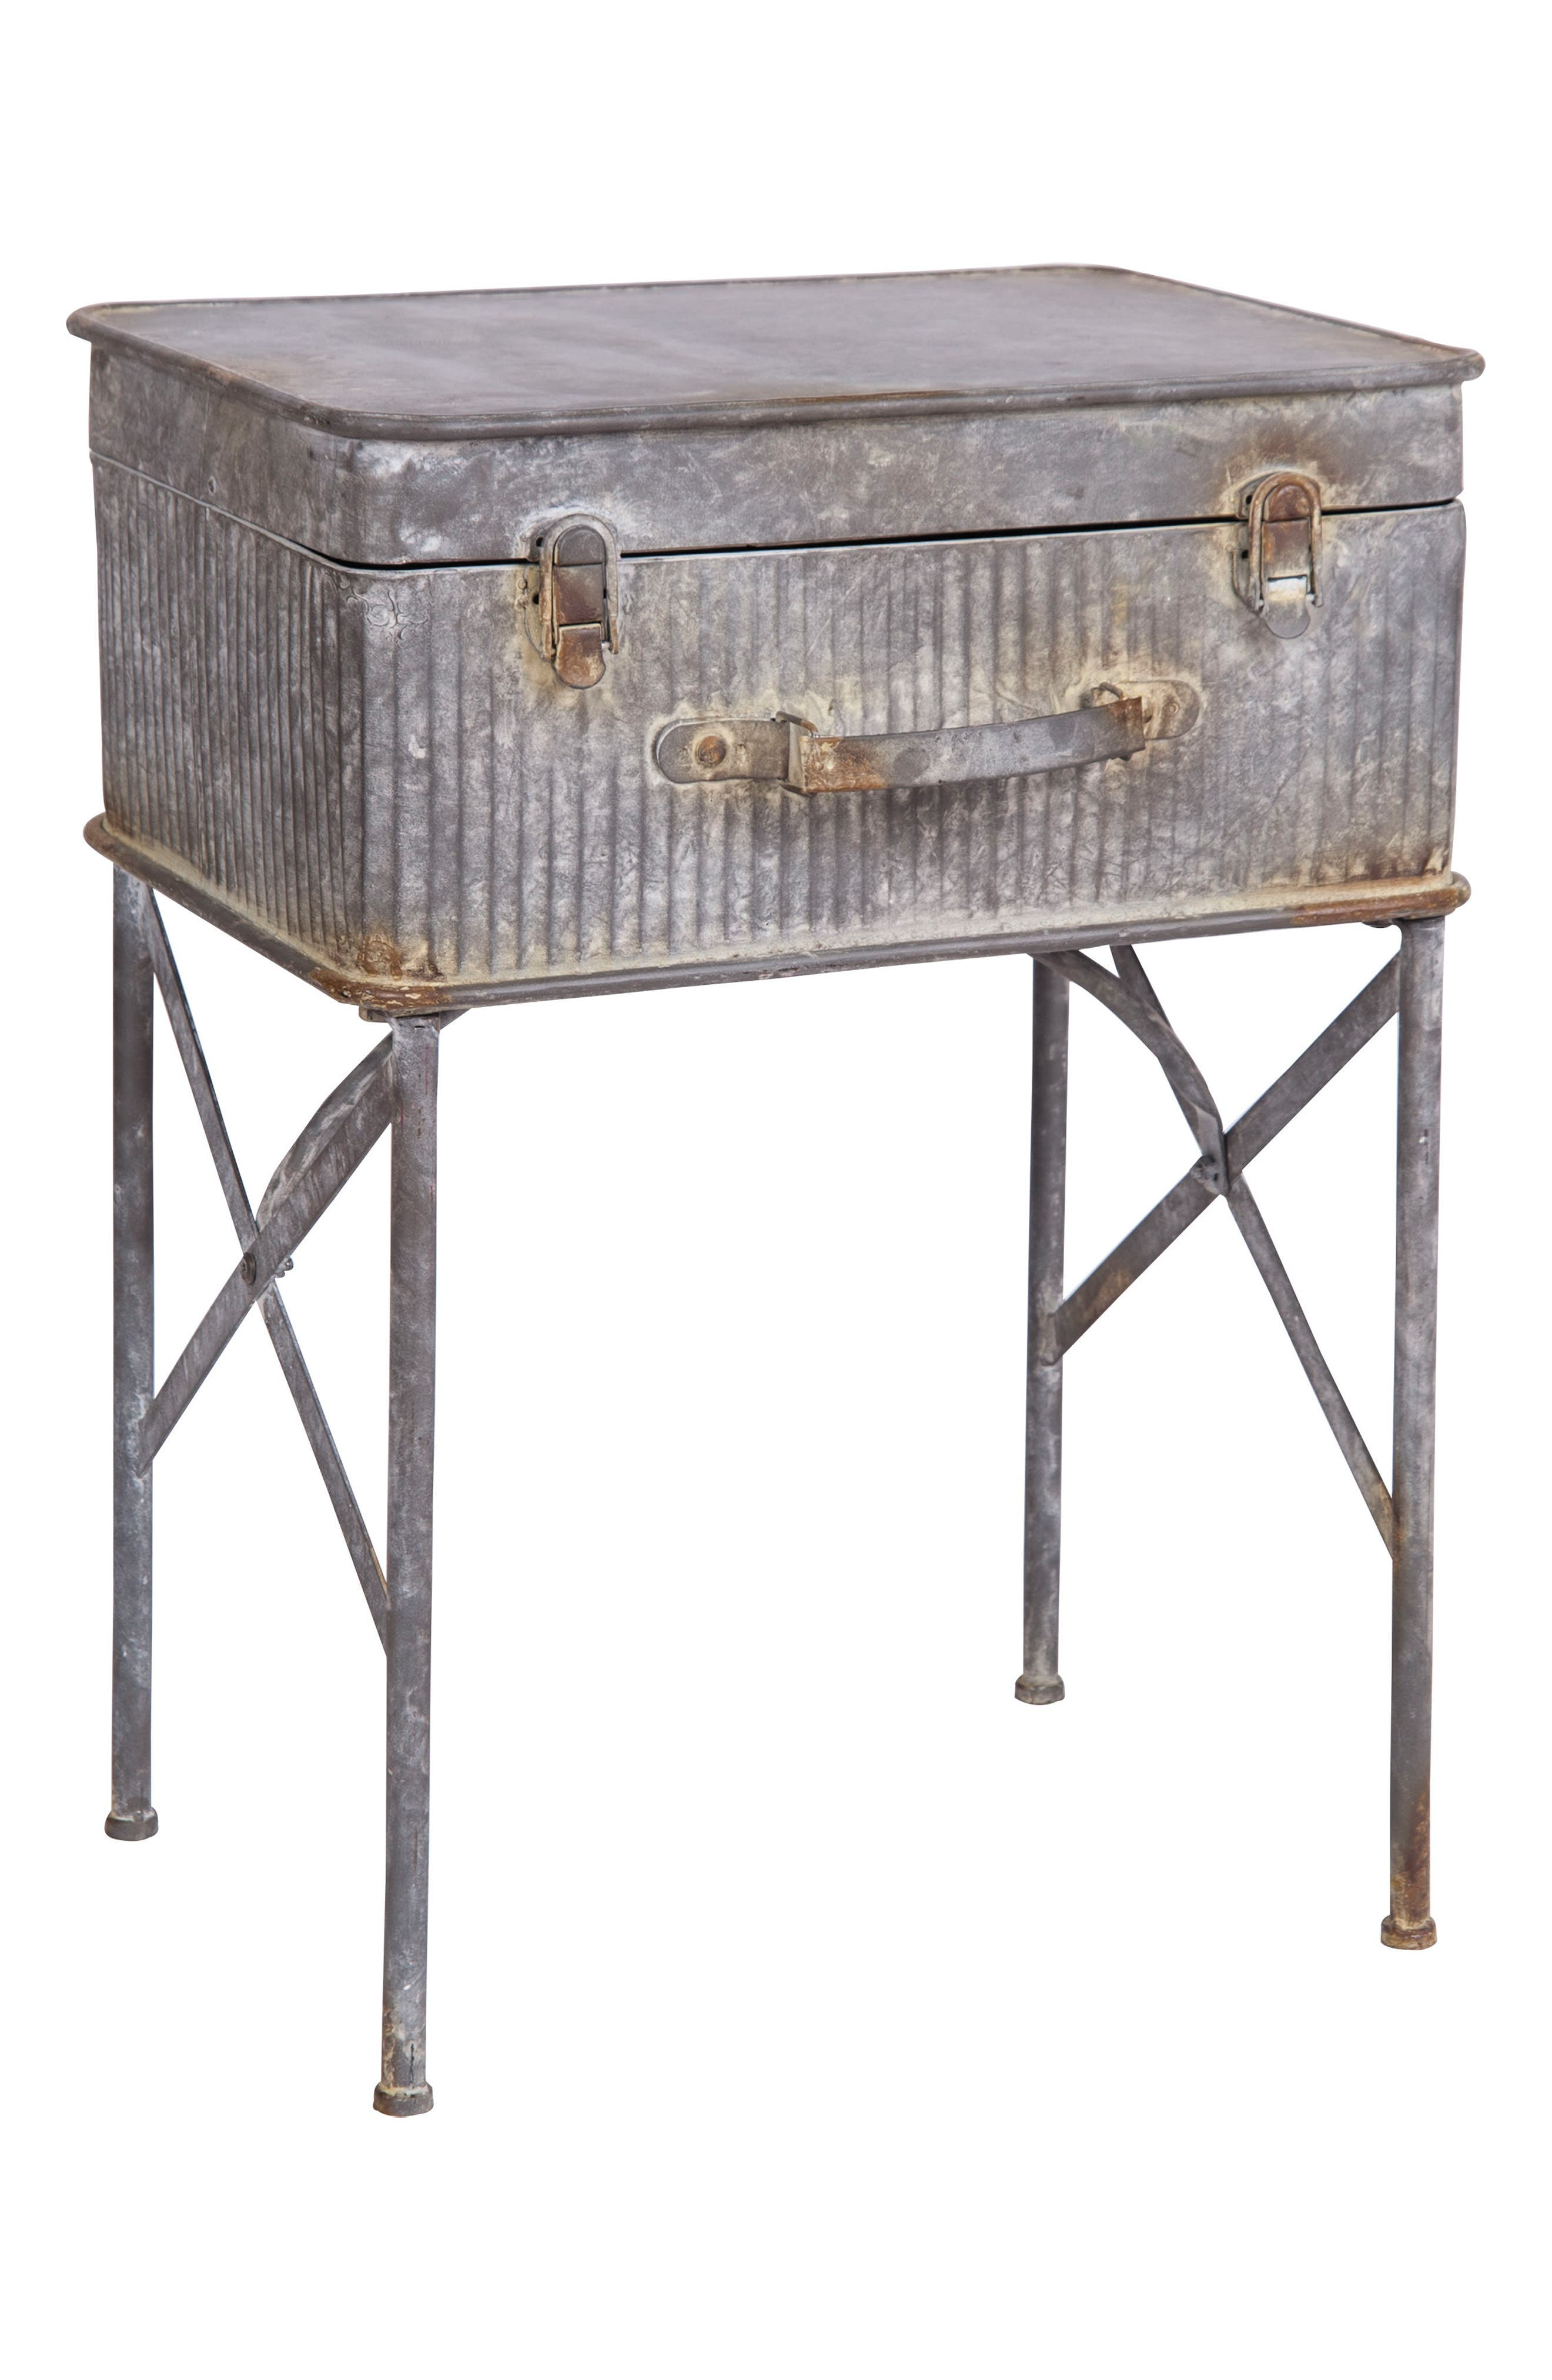 Main Image - Foreside Devon Suitcase Side Table